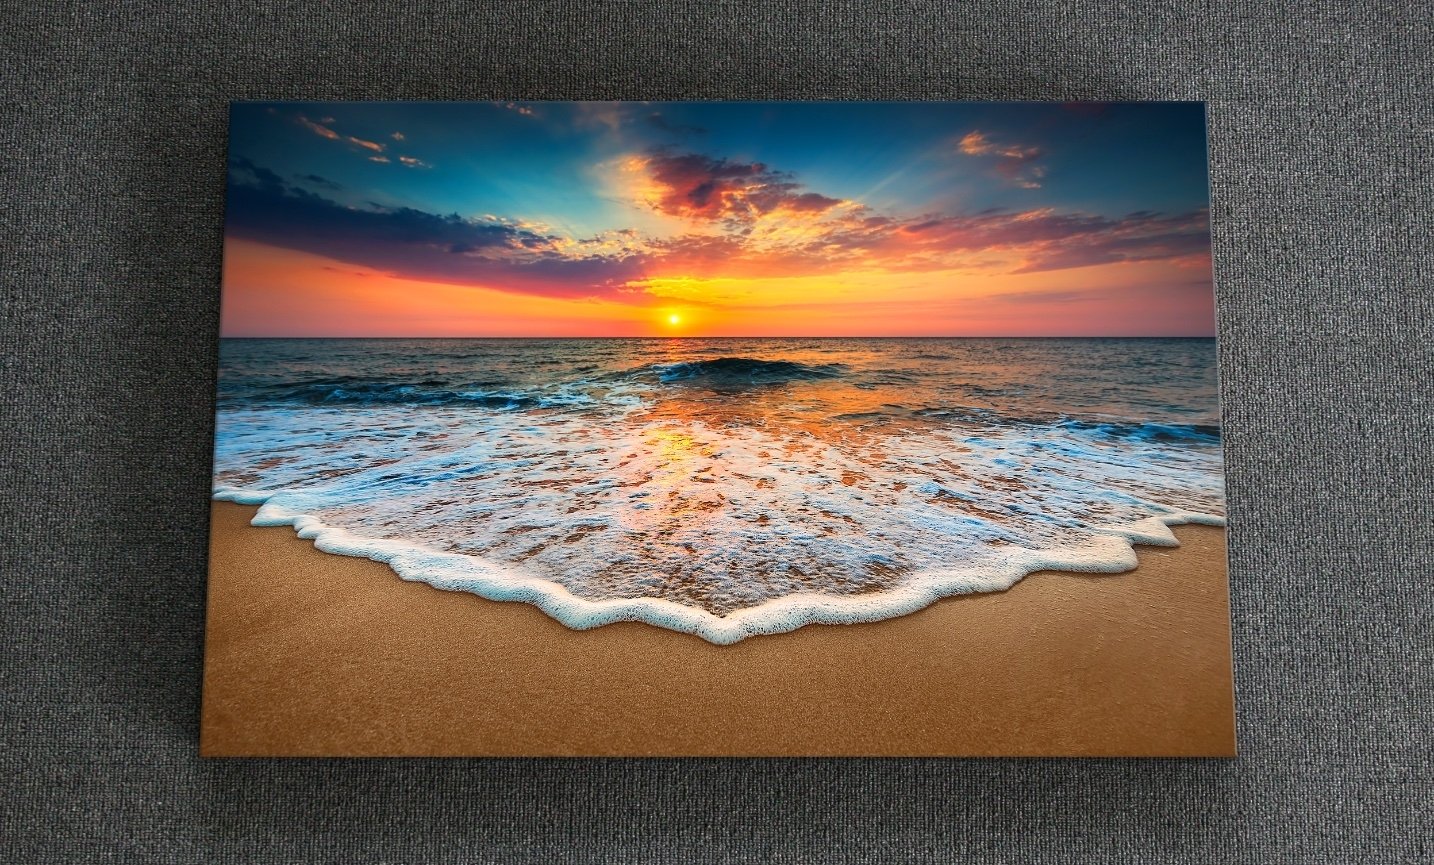 Hd Canvas Printing | Photos, Images & Hd Canvas Prints | Prints On With Regard To Most Up To Date Gold Coast Canvas Wall Art (Gallery 12 of 15)